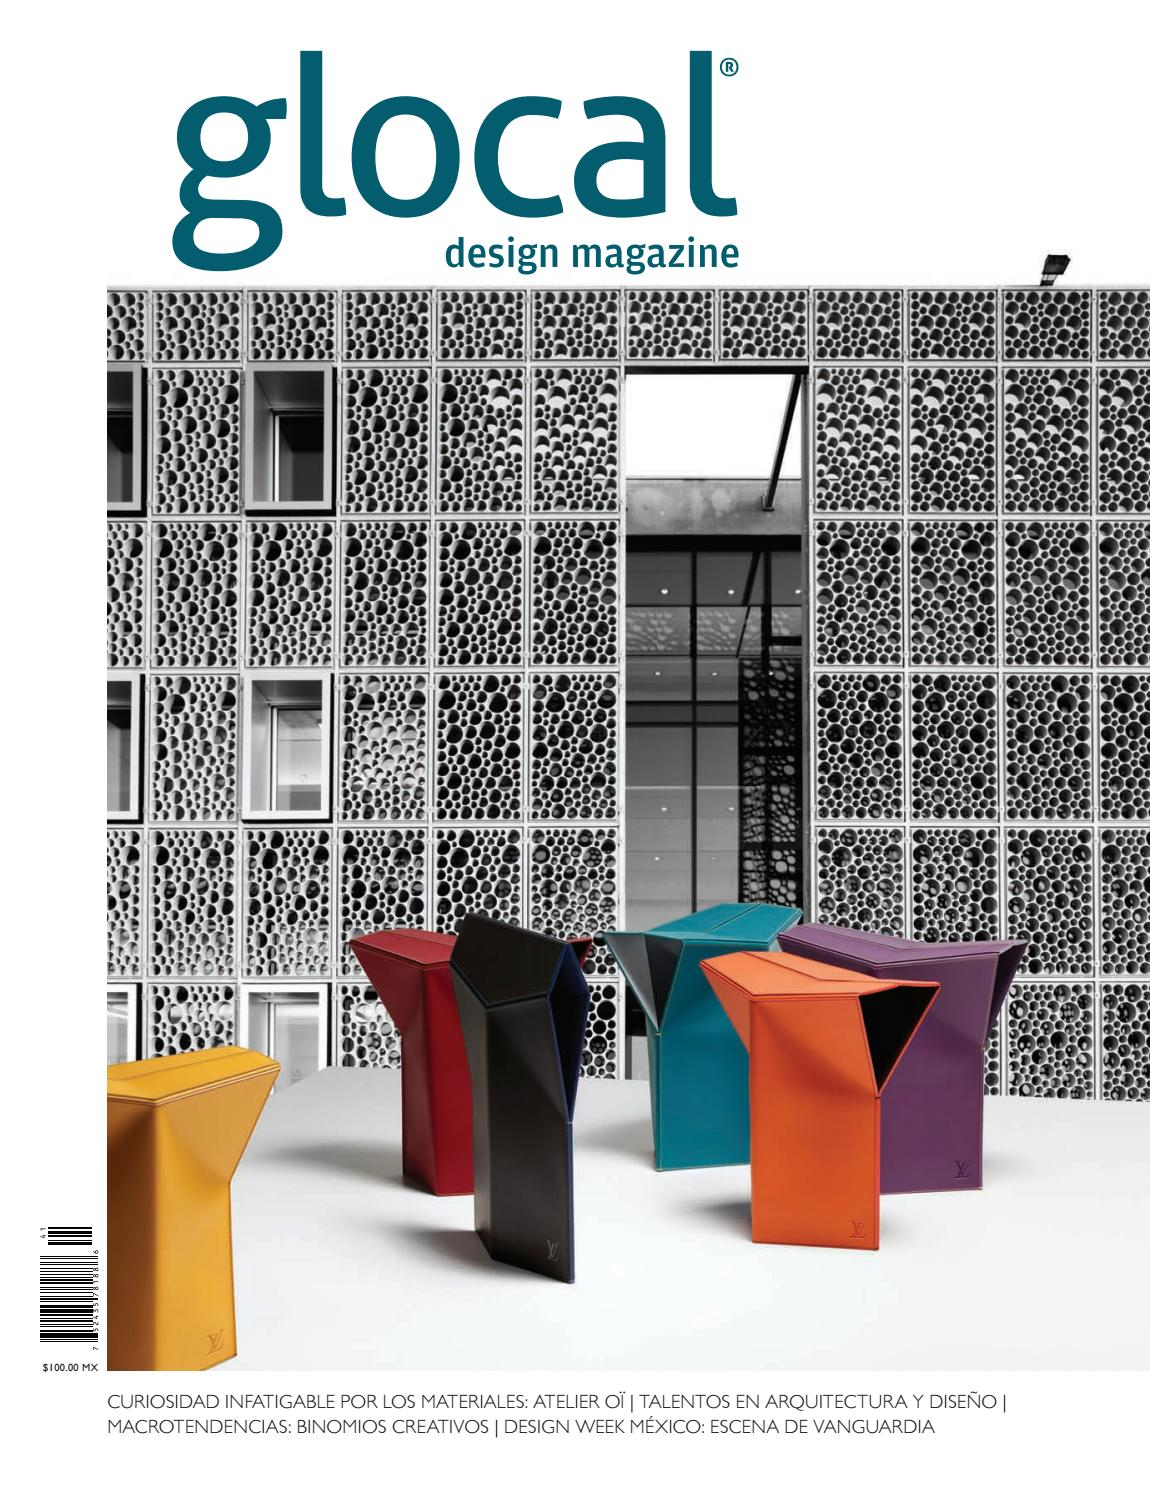 Glocal Design Magazine No 41 Portada Por Cover By Atelier O  # Ad Hoc Muebles Puebla